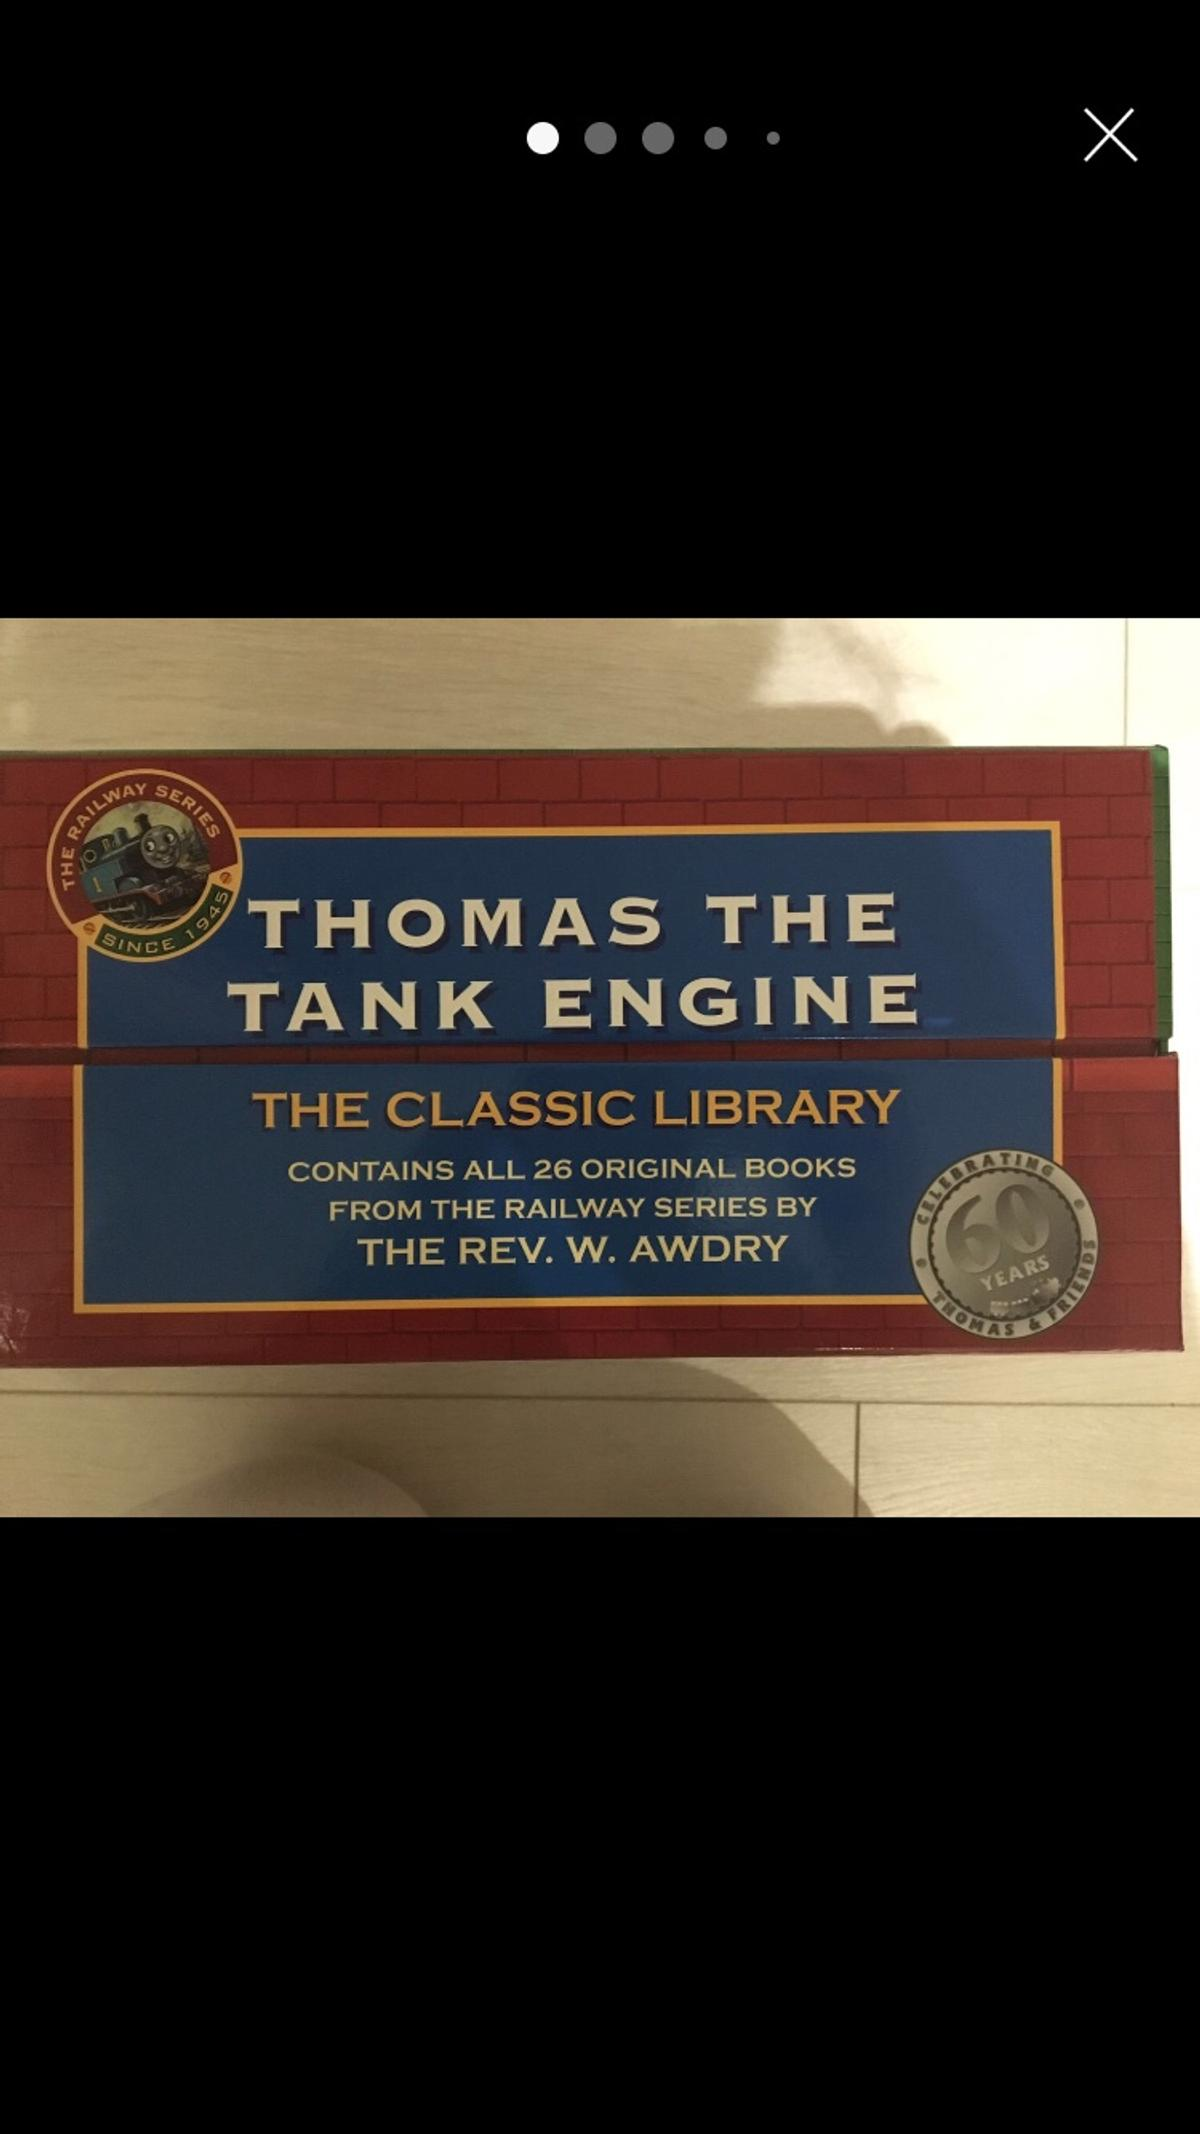 Thomas the Tank engine classic library in London Borough of Bexley